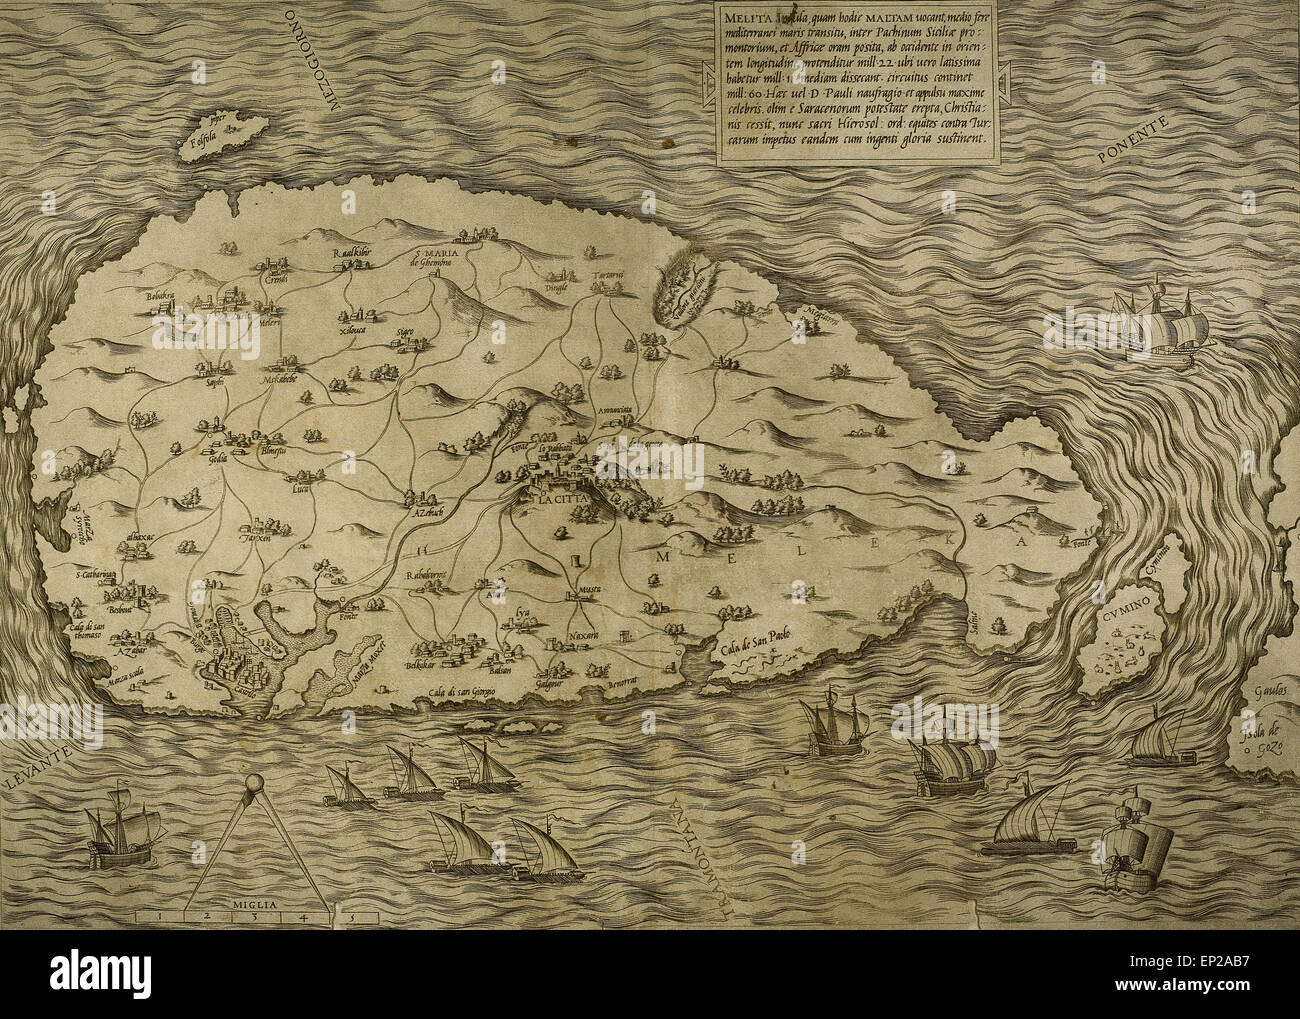 Map Of Ancient Mediterranean Stock Photos & Map Of Ancient ...